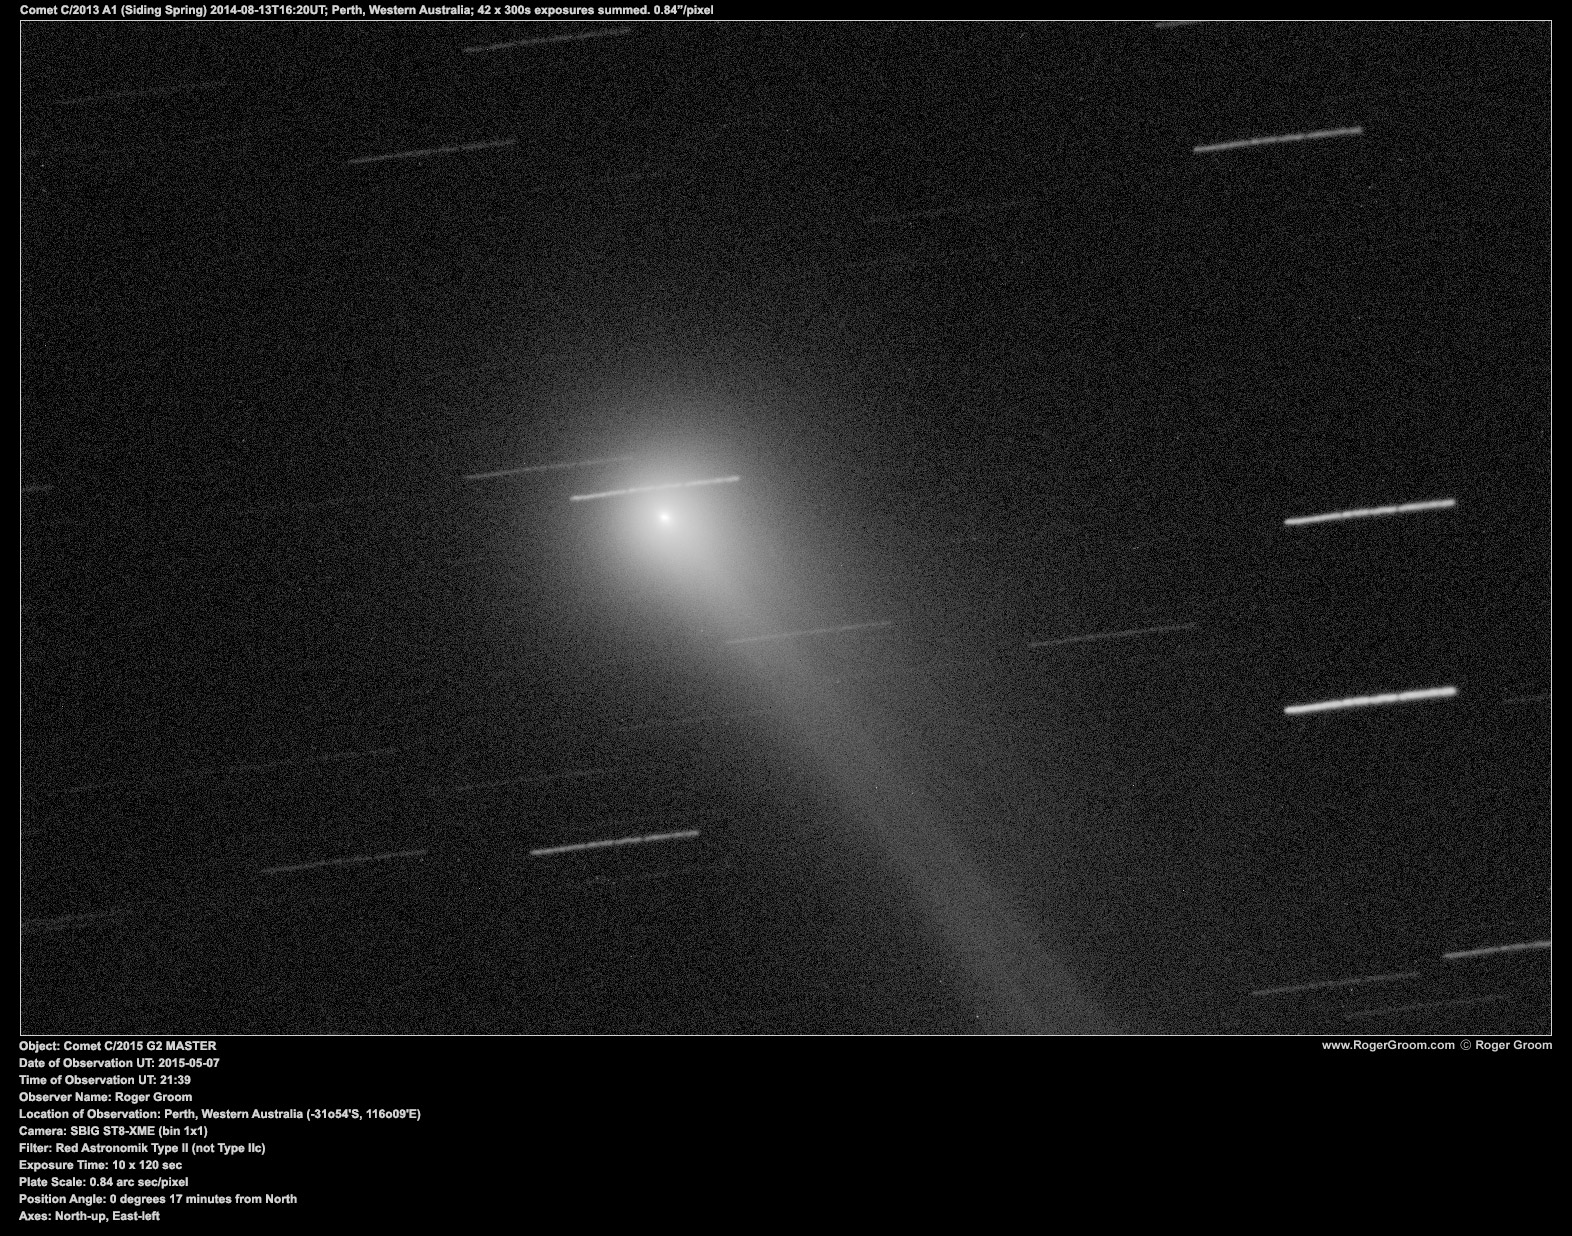 Object: Comet C/2015 G2 MASTER Date of Observation UT: 2015-05-07 Time of Observation UT: 21:39 Observer Name: Roger Groom Location of Observation: Perth, Western Australia (-31o54'S, 116o09'E) Camera: SBIG ST8-XME (bin 1x1) Filter: Red Astronomik Type II (not Type IIc) Exposure Time: 10 x 120 sec Plate Scale: 0.84 arc sec/pixel Position Angle: 0 degrees 17 minutes from North Axes: North-up, East-left